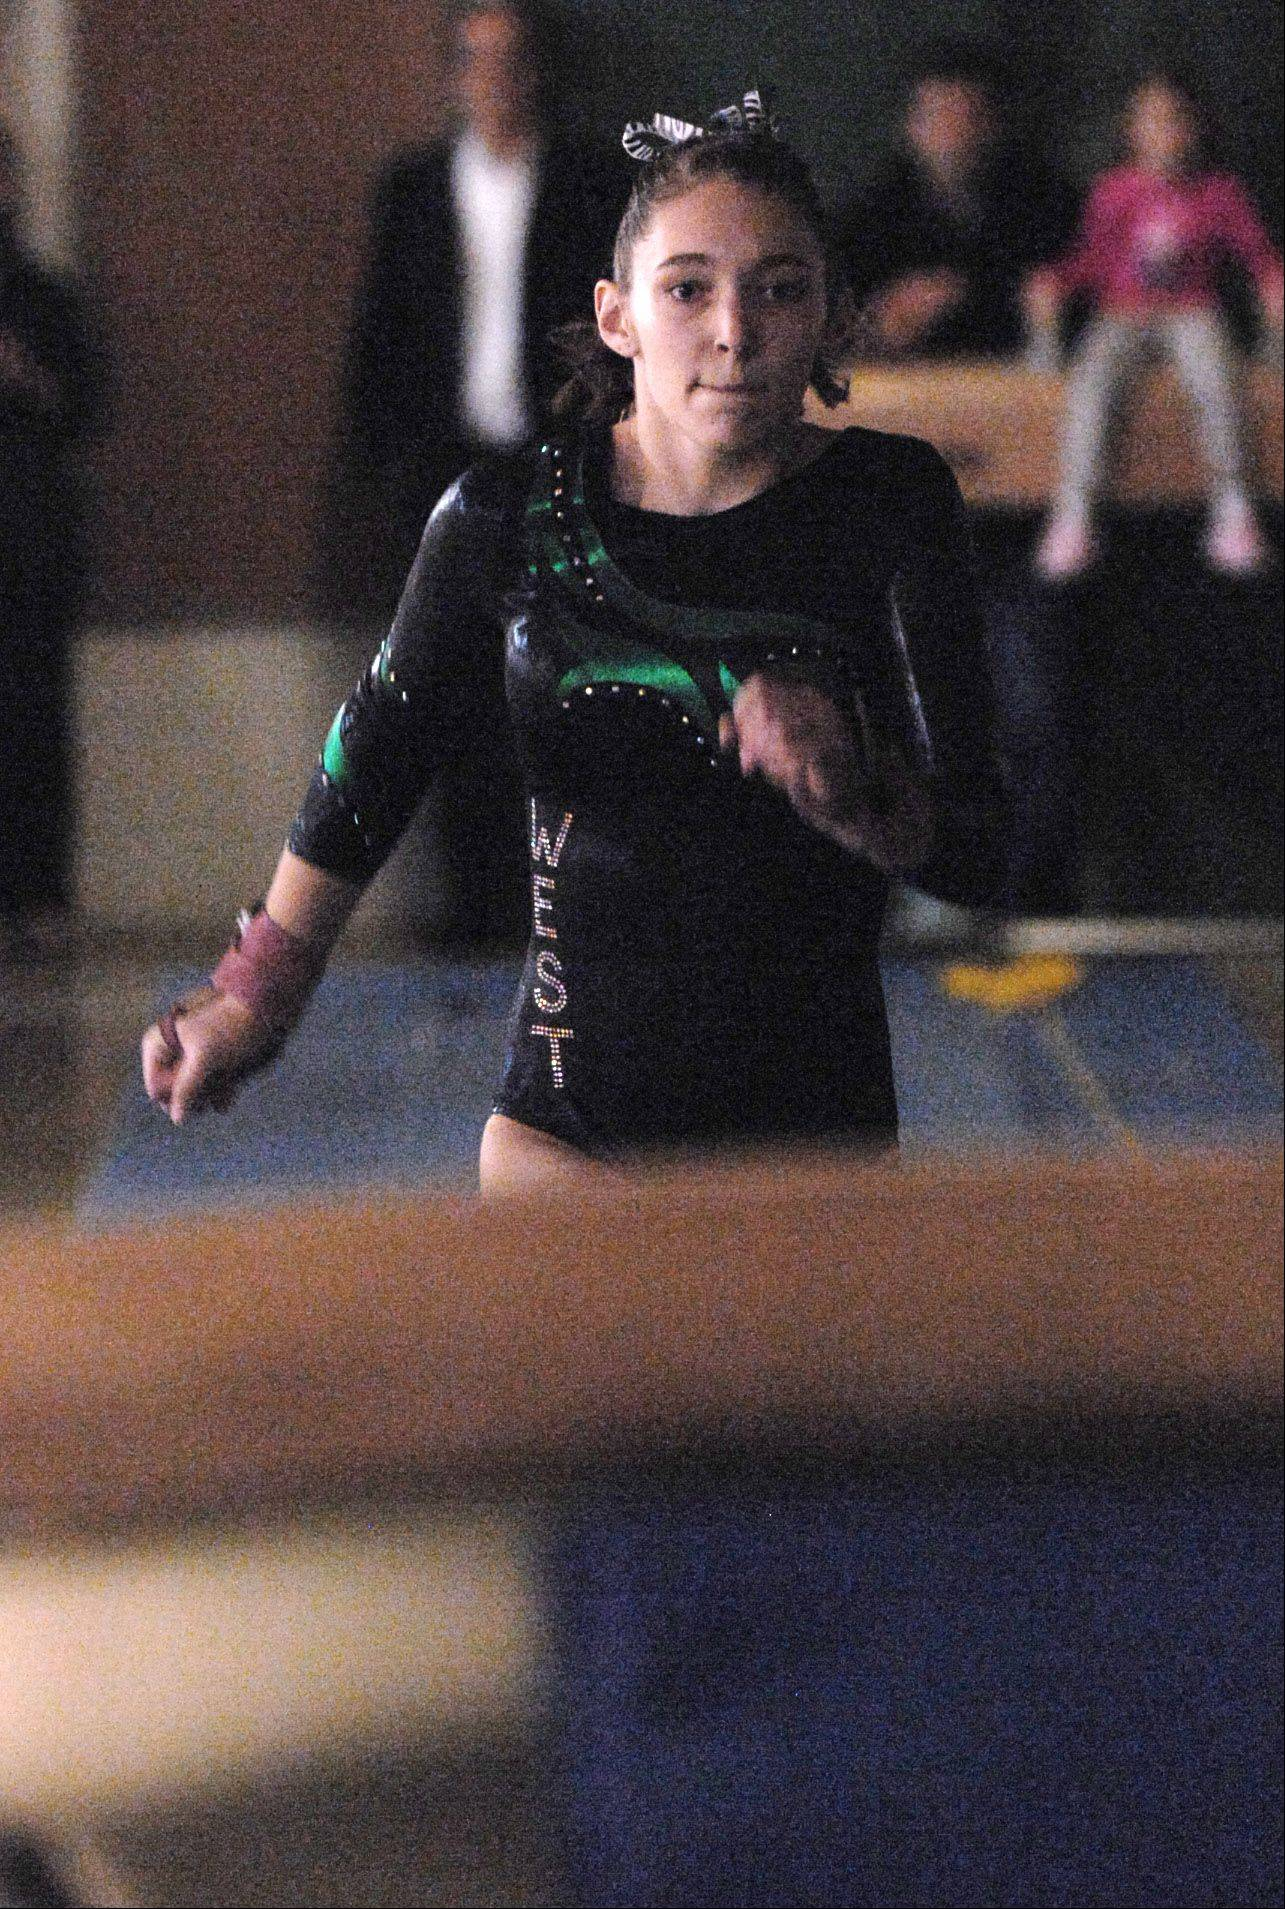 Nicole Pagor of Glenbard West performs on the vault during a dual gymnastics meet against Lyons Township in at home in Glen Ellyn.